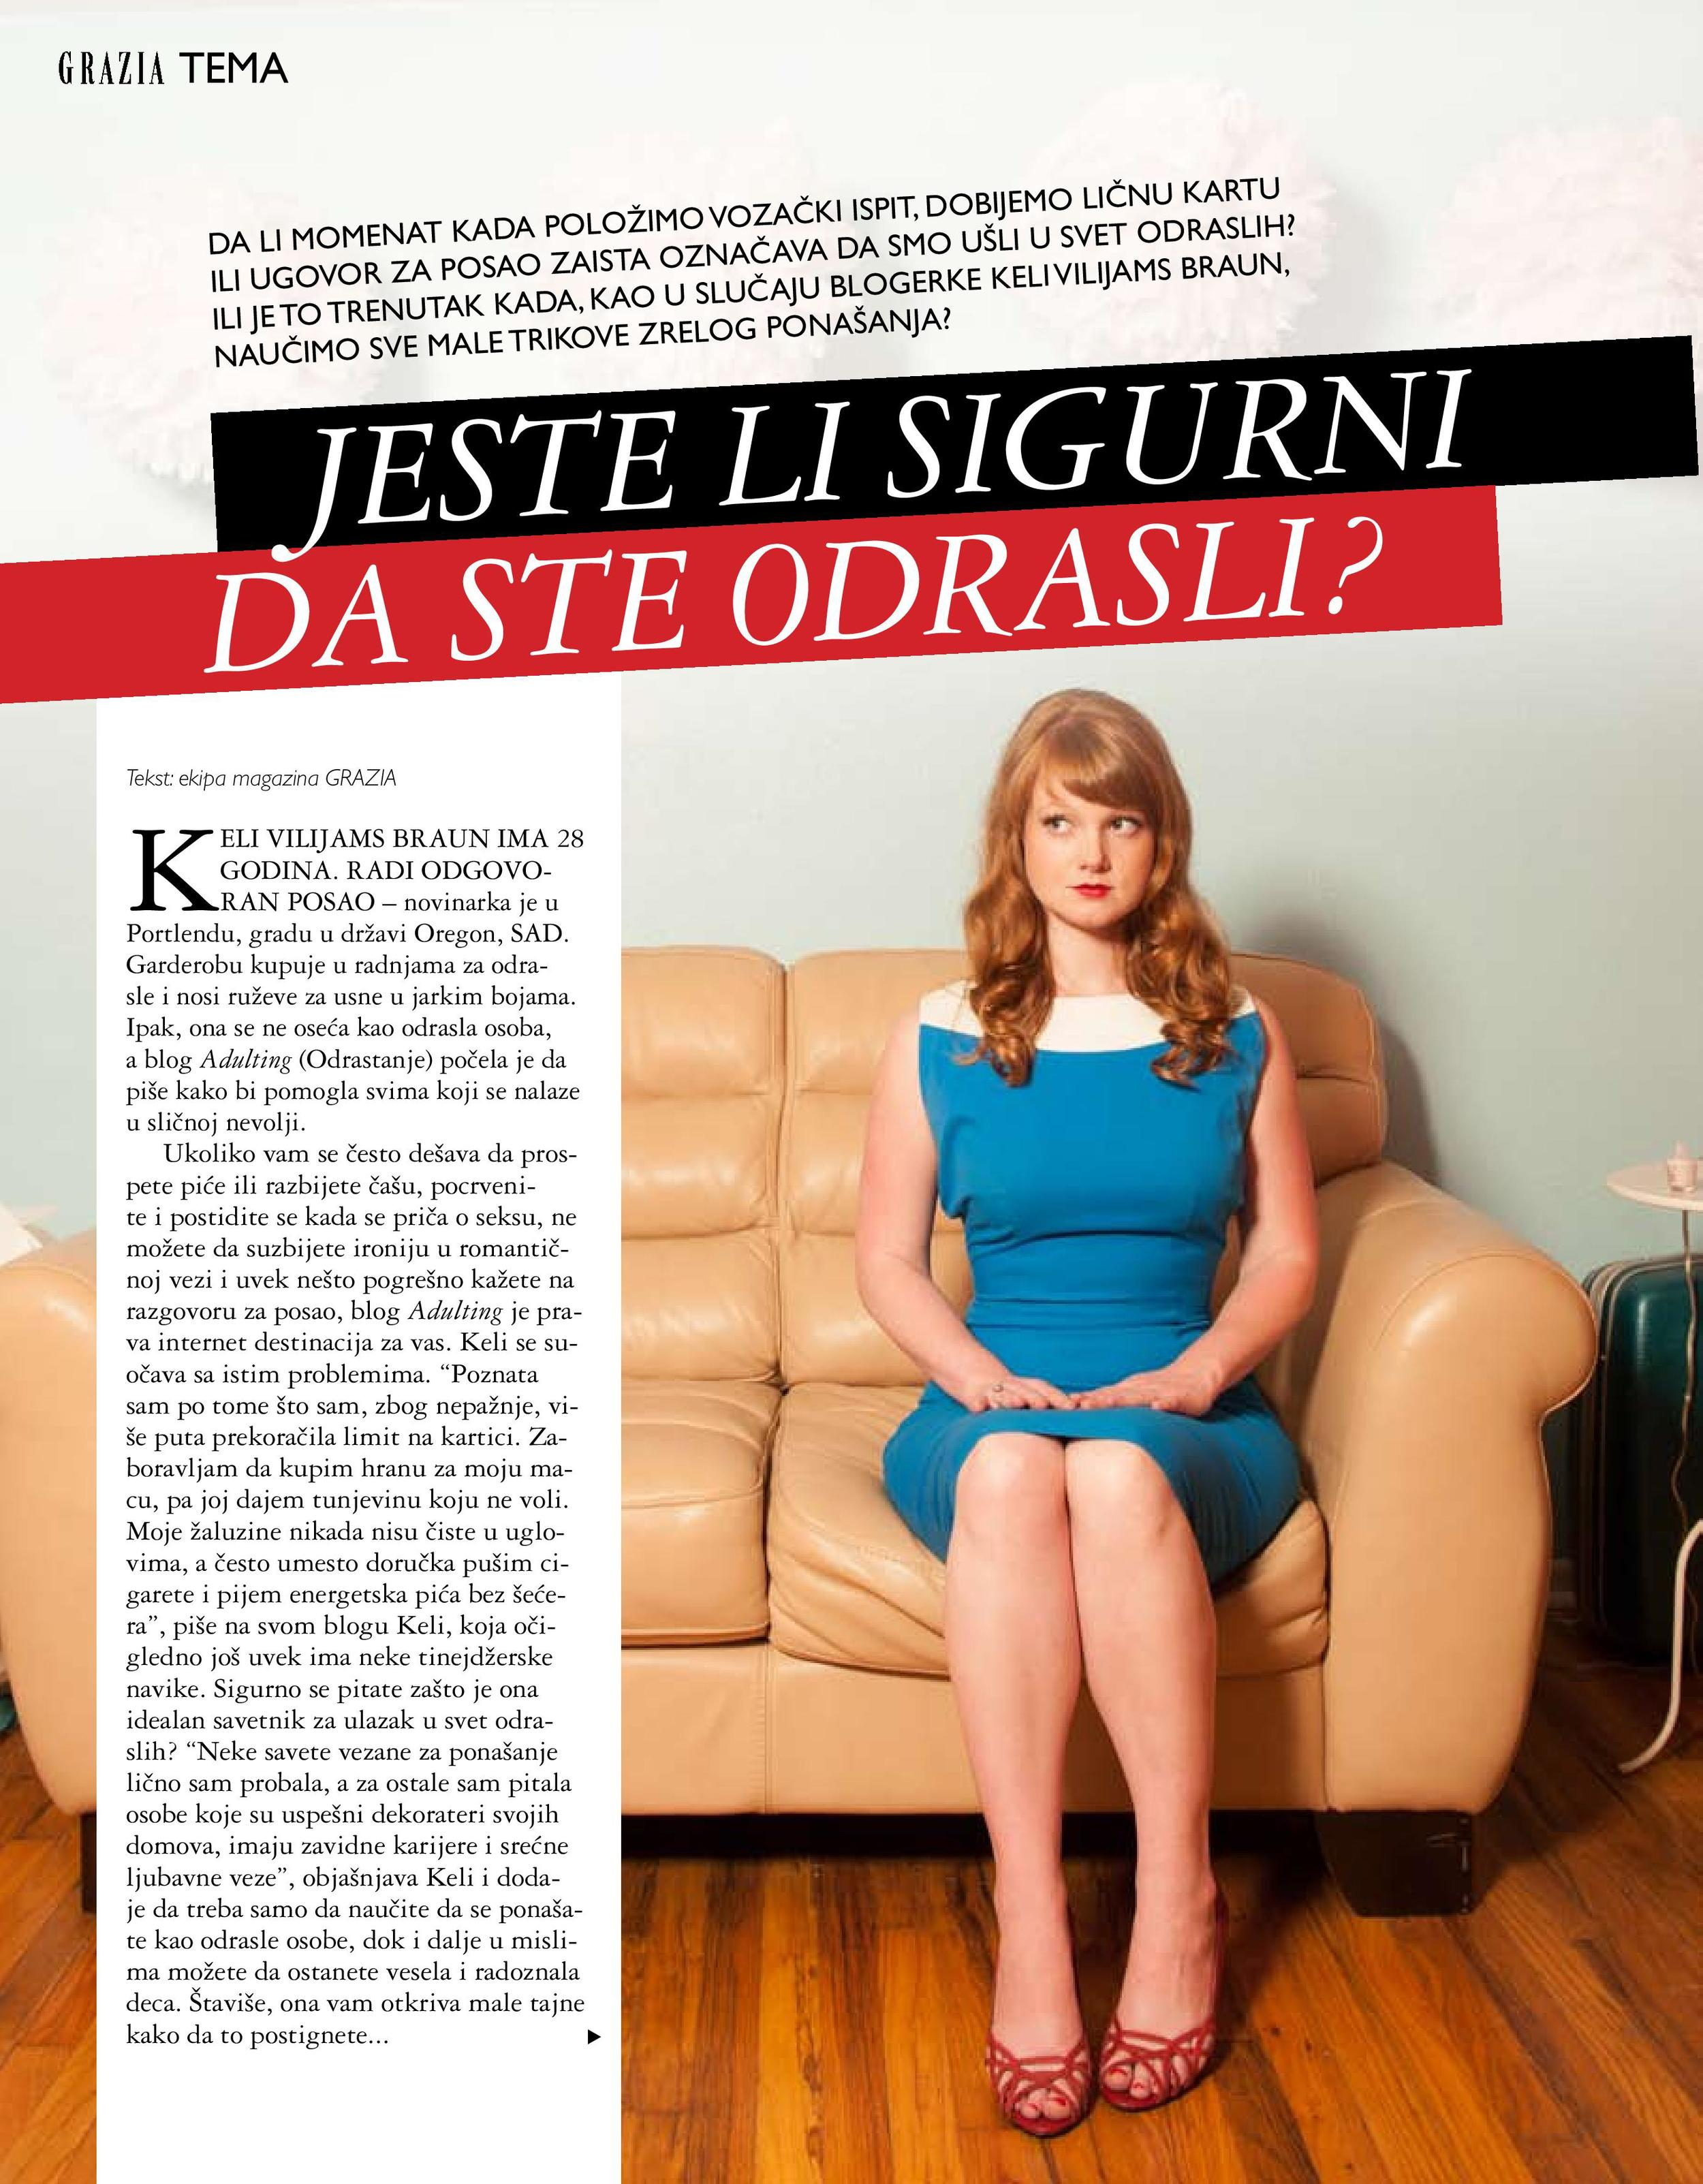 Grazia Serbia, Feb. 2013. Also, it should be said that I really, really wish my name was Keli Vilijams Braun.